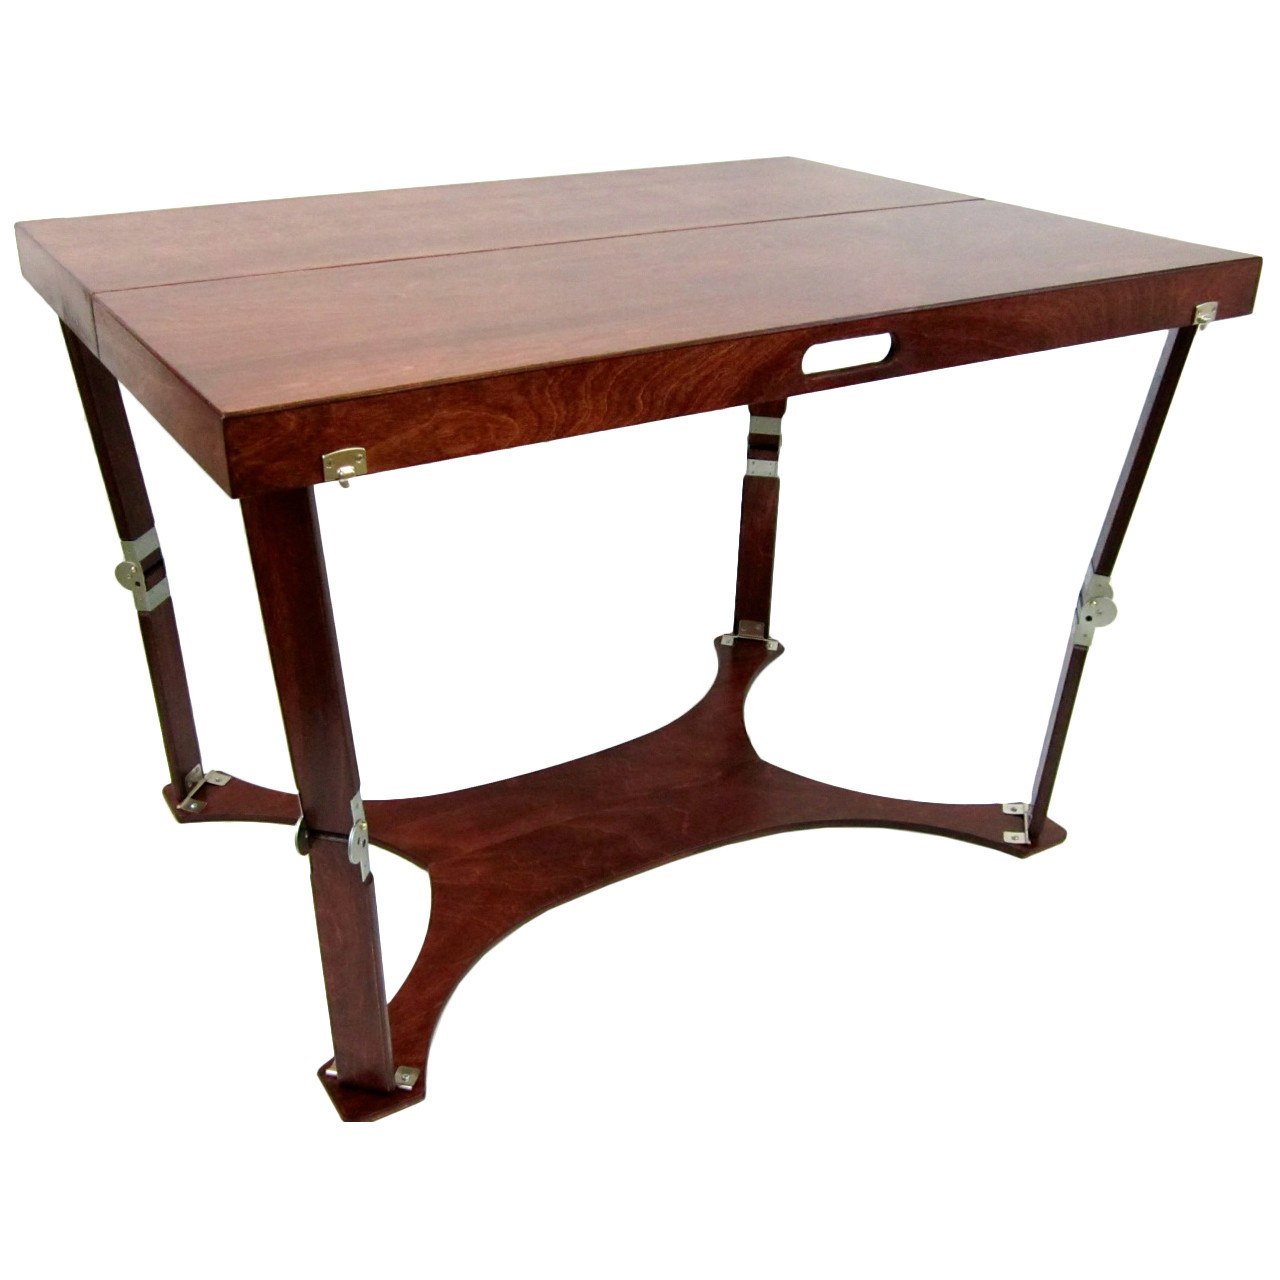 Best ideas about Folding Dining Table . Save or Pin Spiderlegs Picnic Folding Dining Table & Reviews Now.